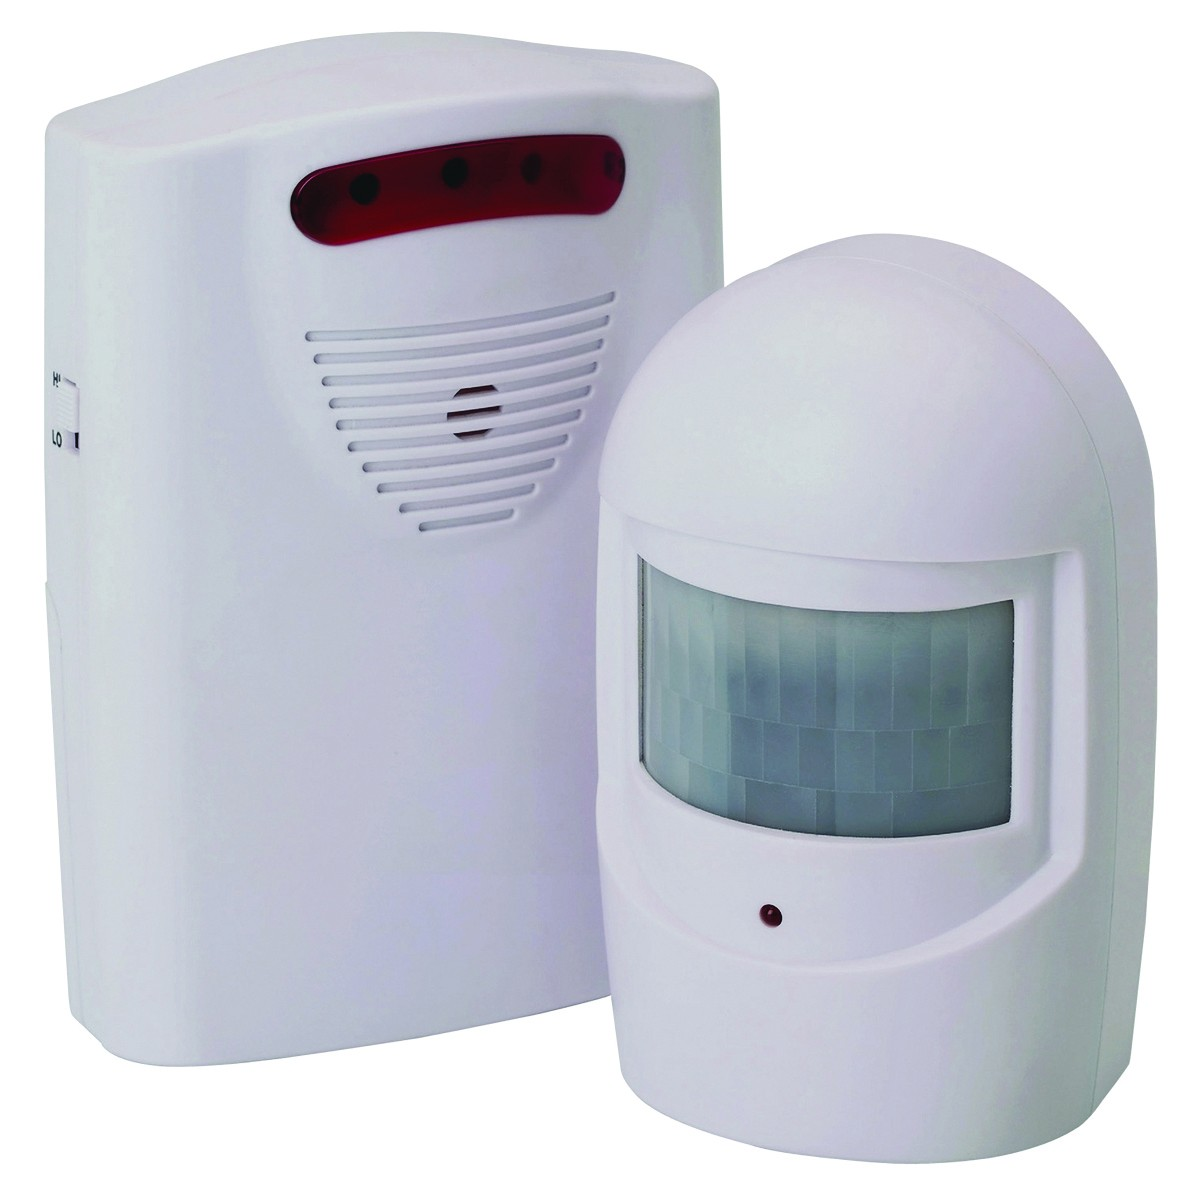 Home Security Wireless Alarms House Alarms